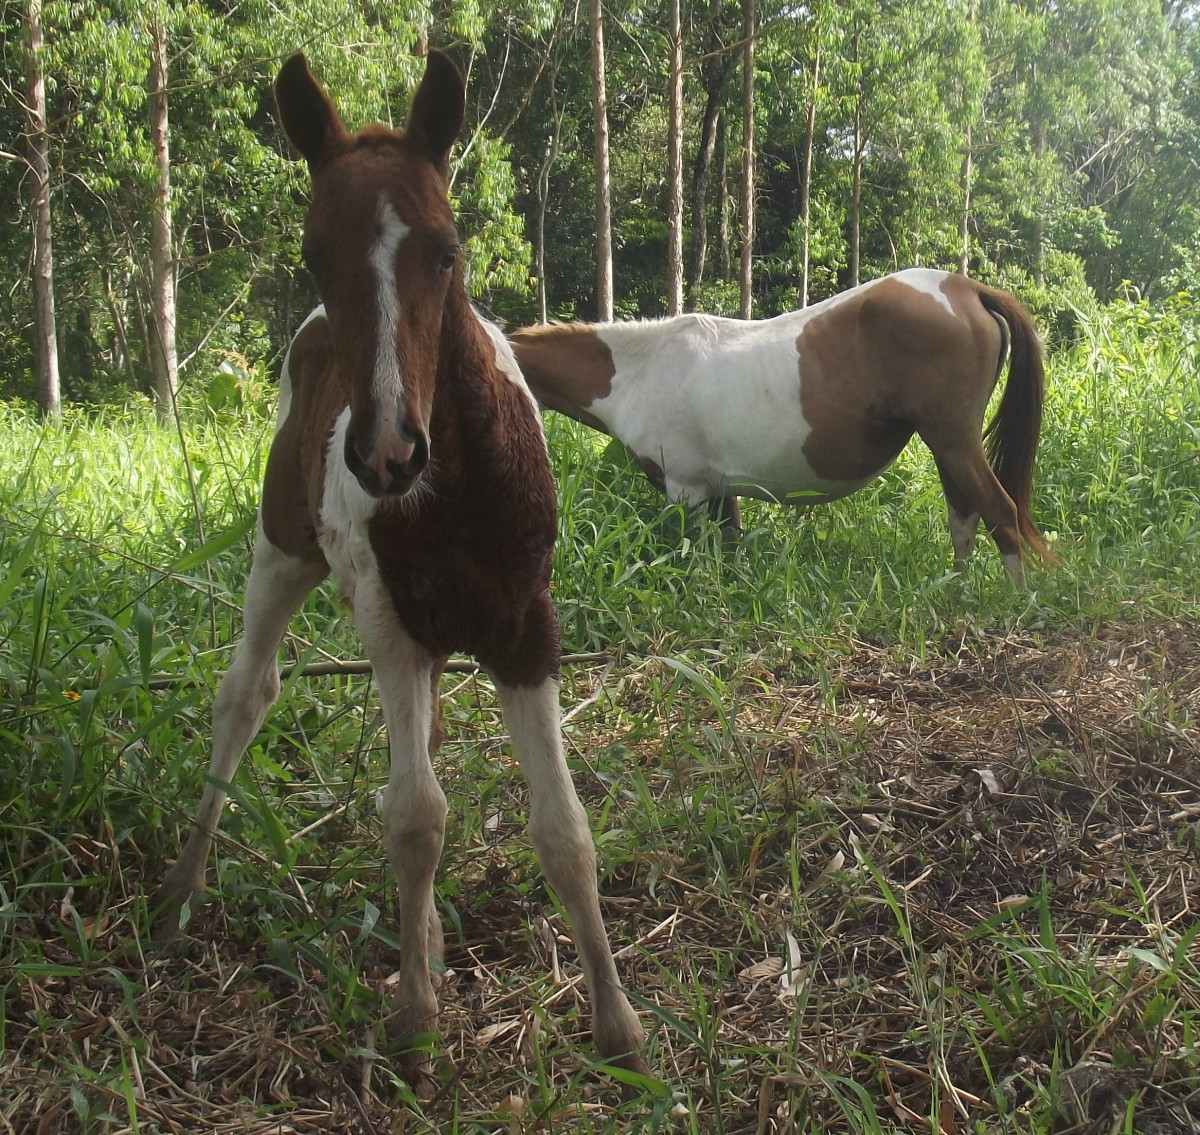 Foals are curious so teach your horses to come when called early if possible.